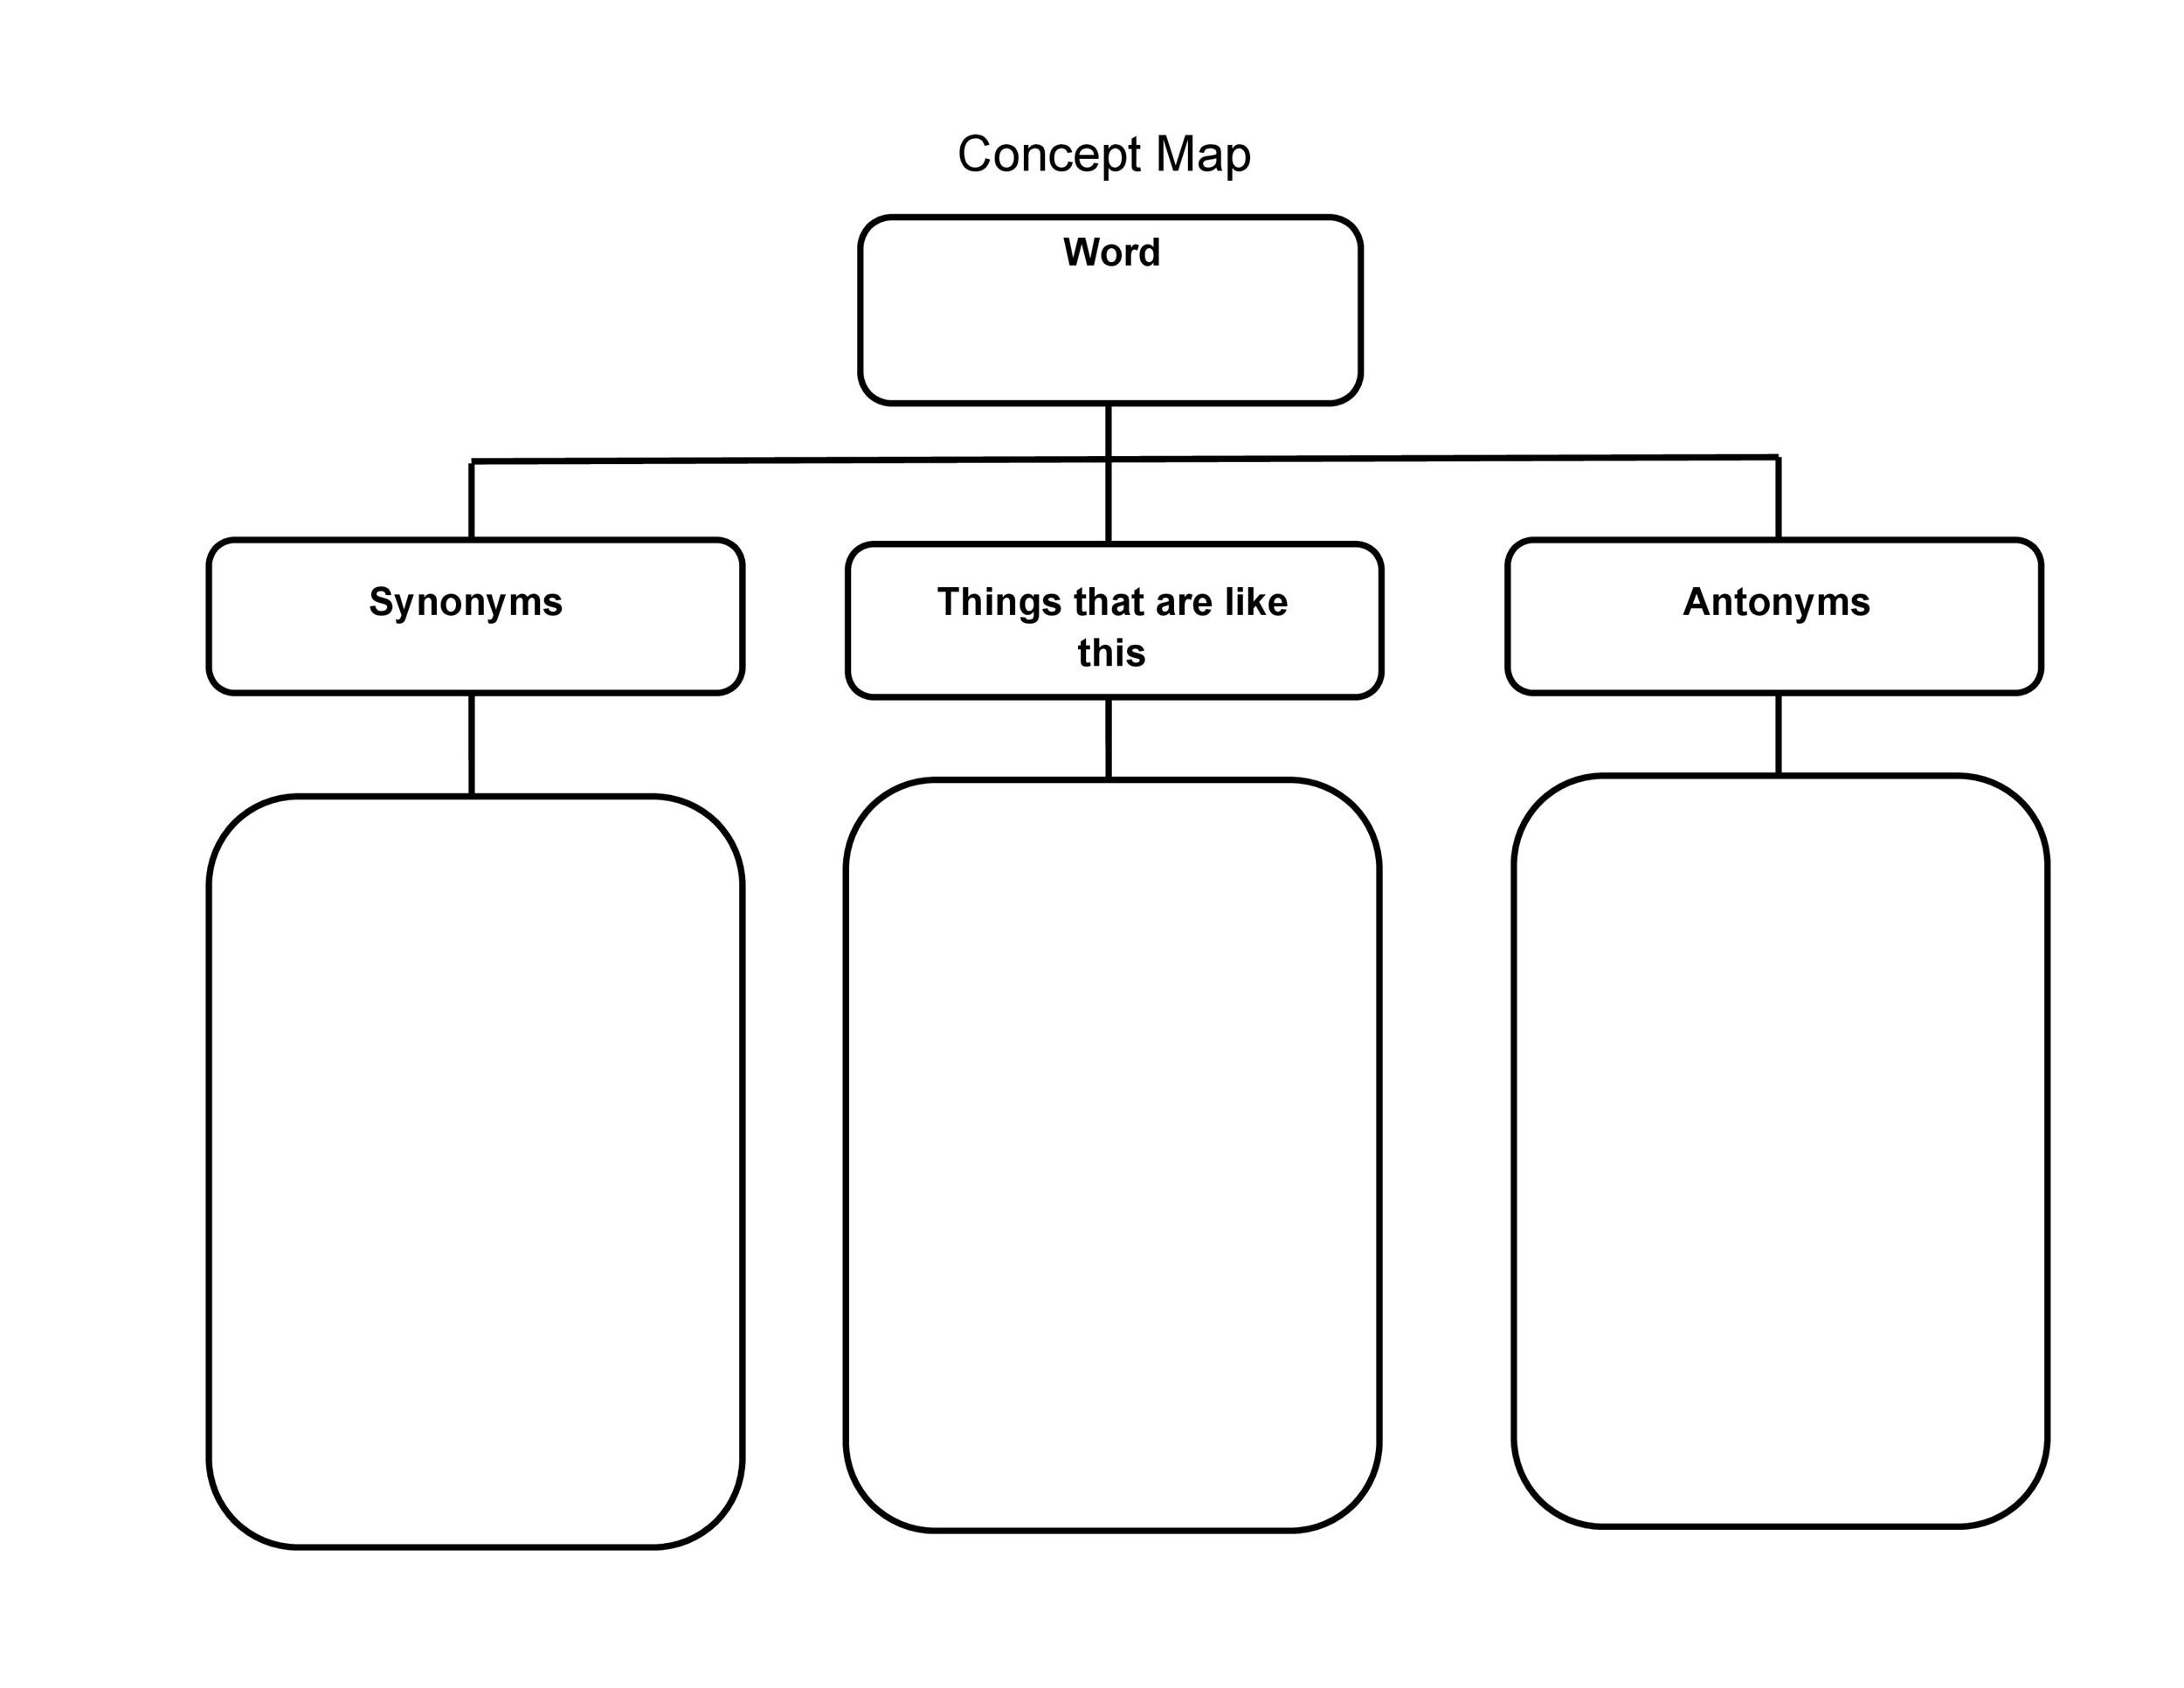 Concept Map Template 40+ Concept Map Templates [Hierarchical, Spider, Flowchart] Concept Map Template